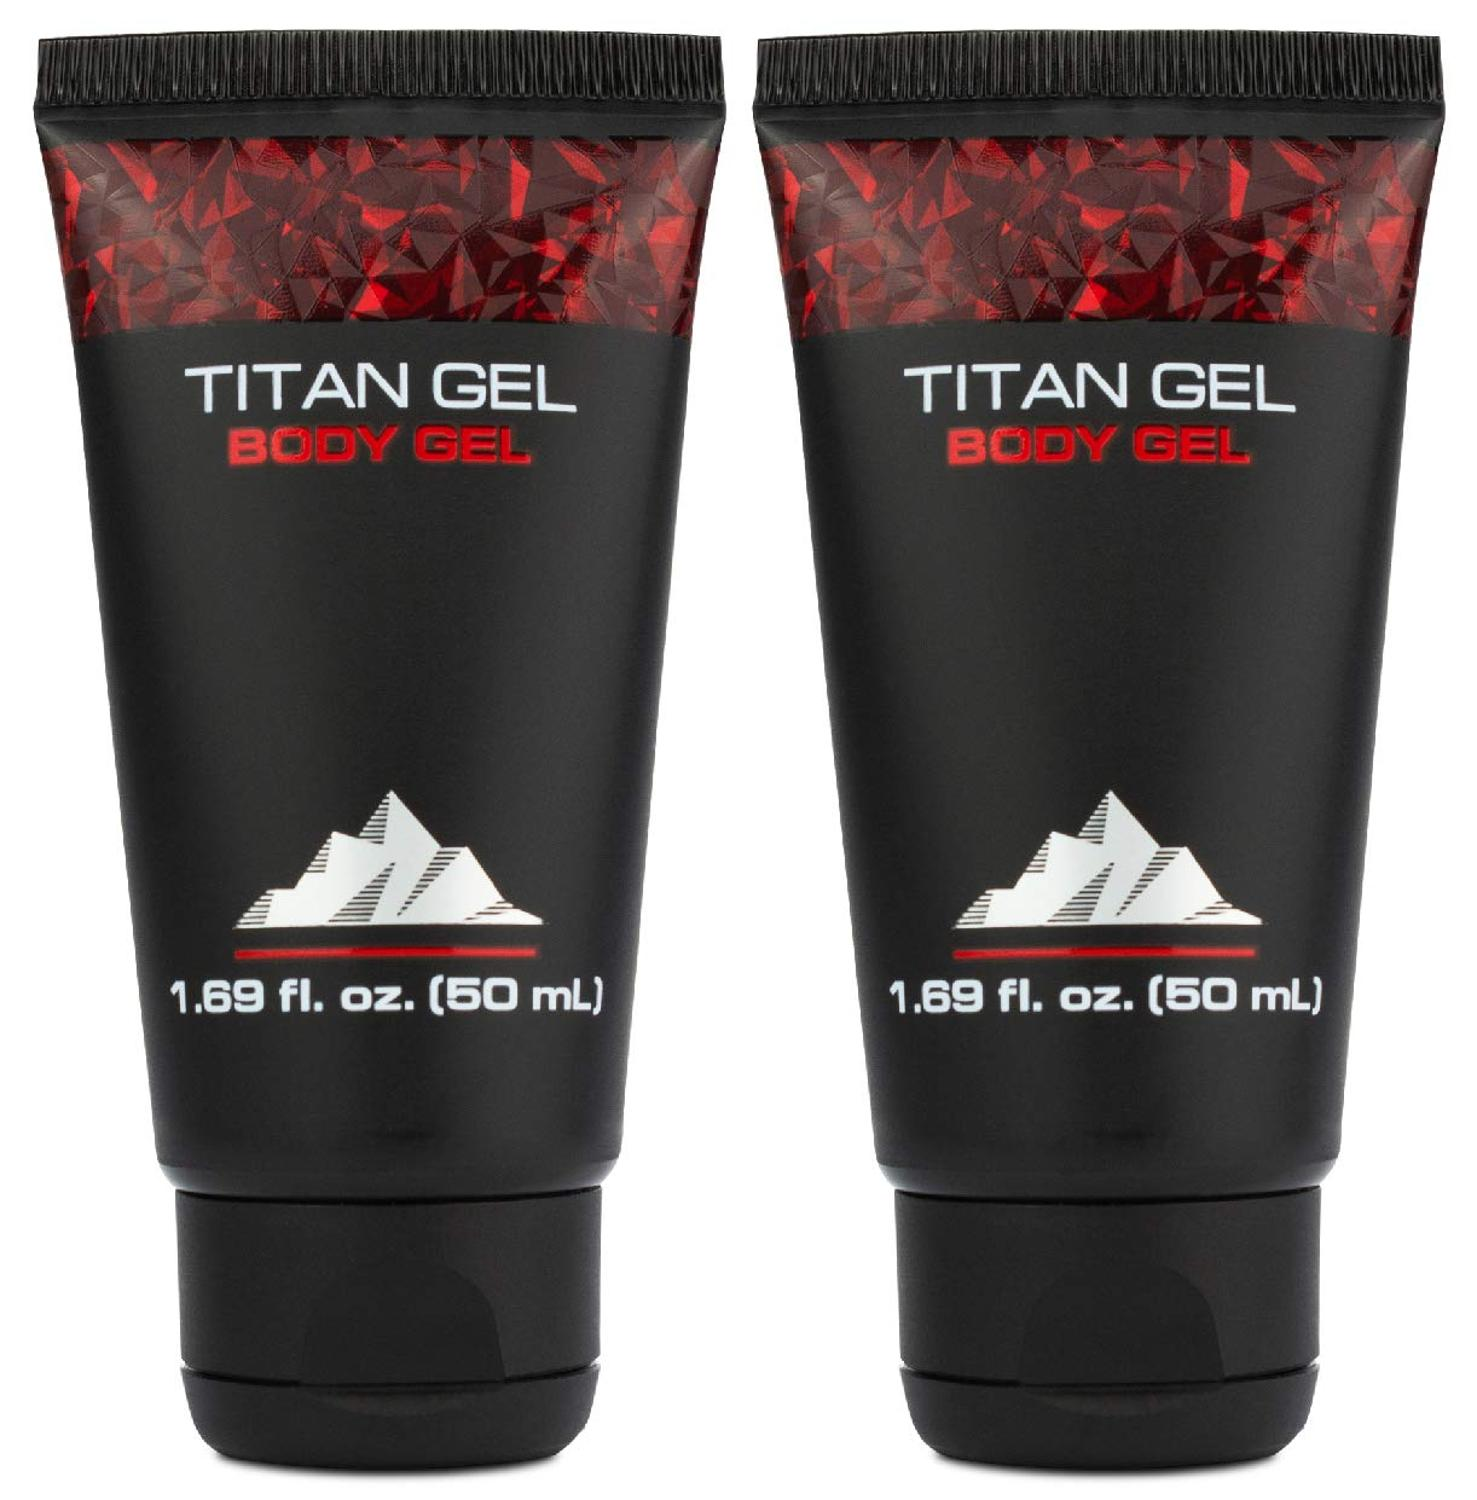 Titan Gel 2 Pack For Man Original Body Gel For Male Enhacement And Enlargement Awakening Muscles With Tantric Massage – Jelly Ge